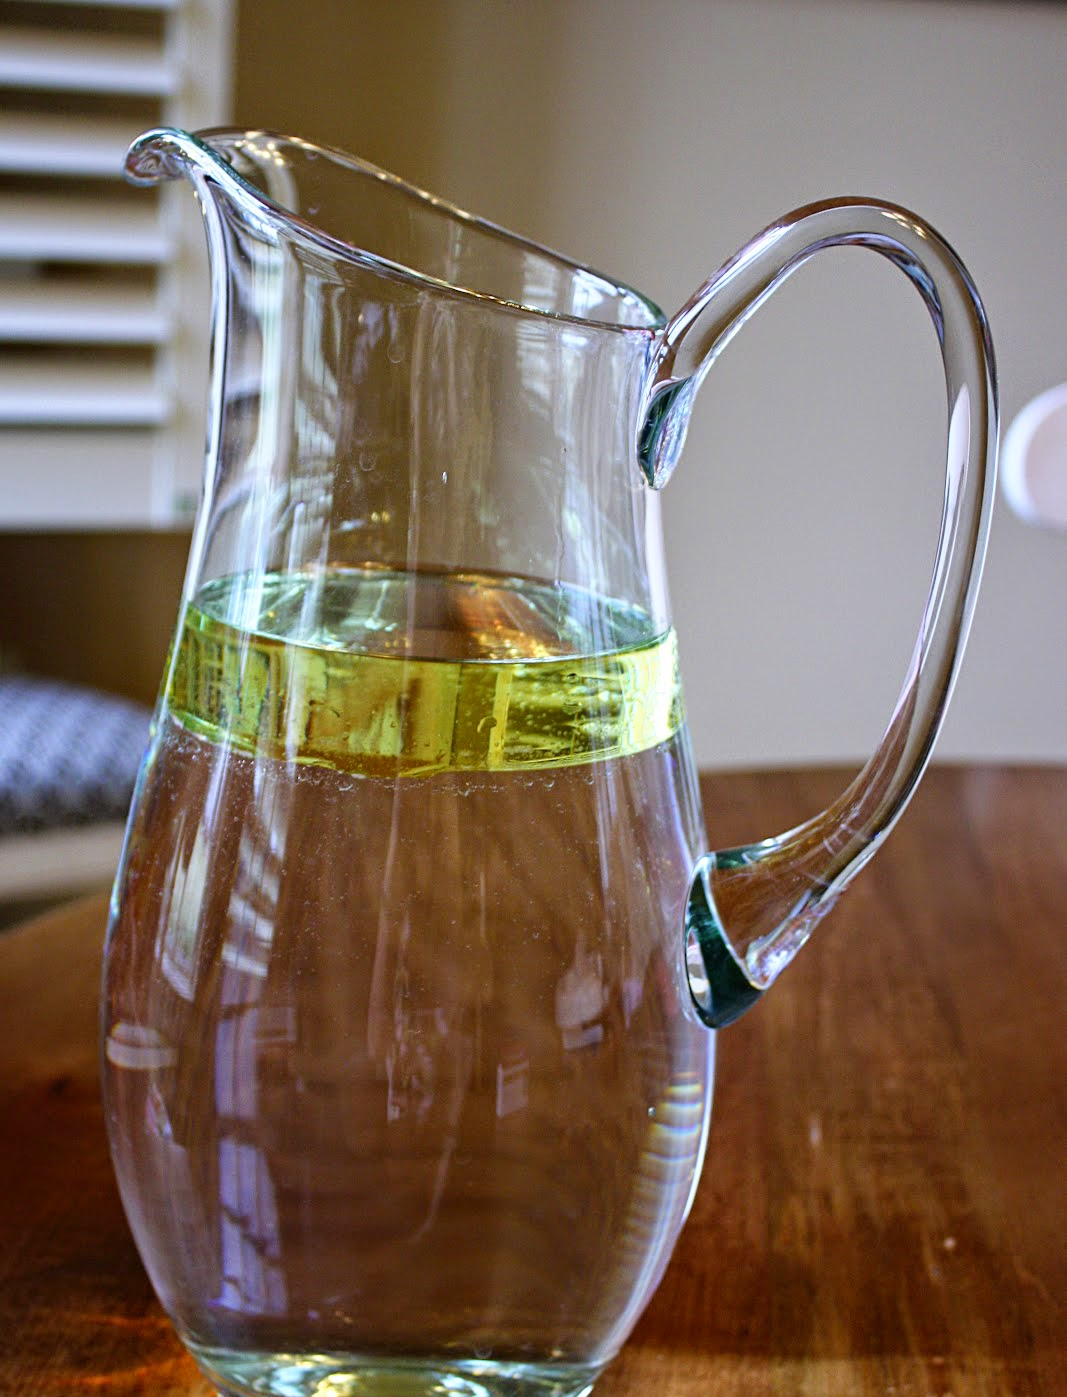 2012 07 10 Oil and Water in Pitcher.jpg